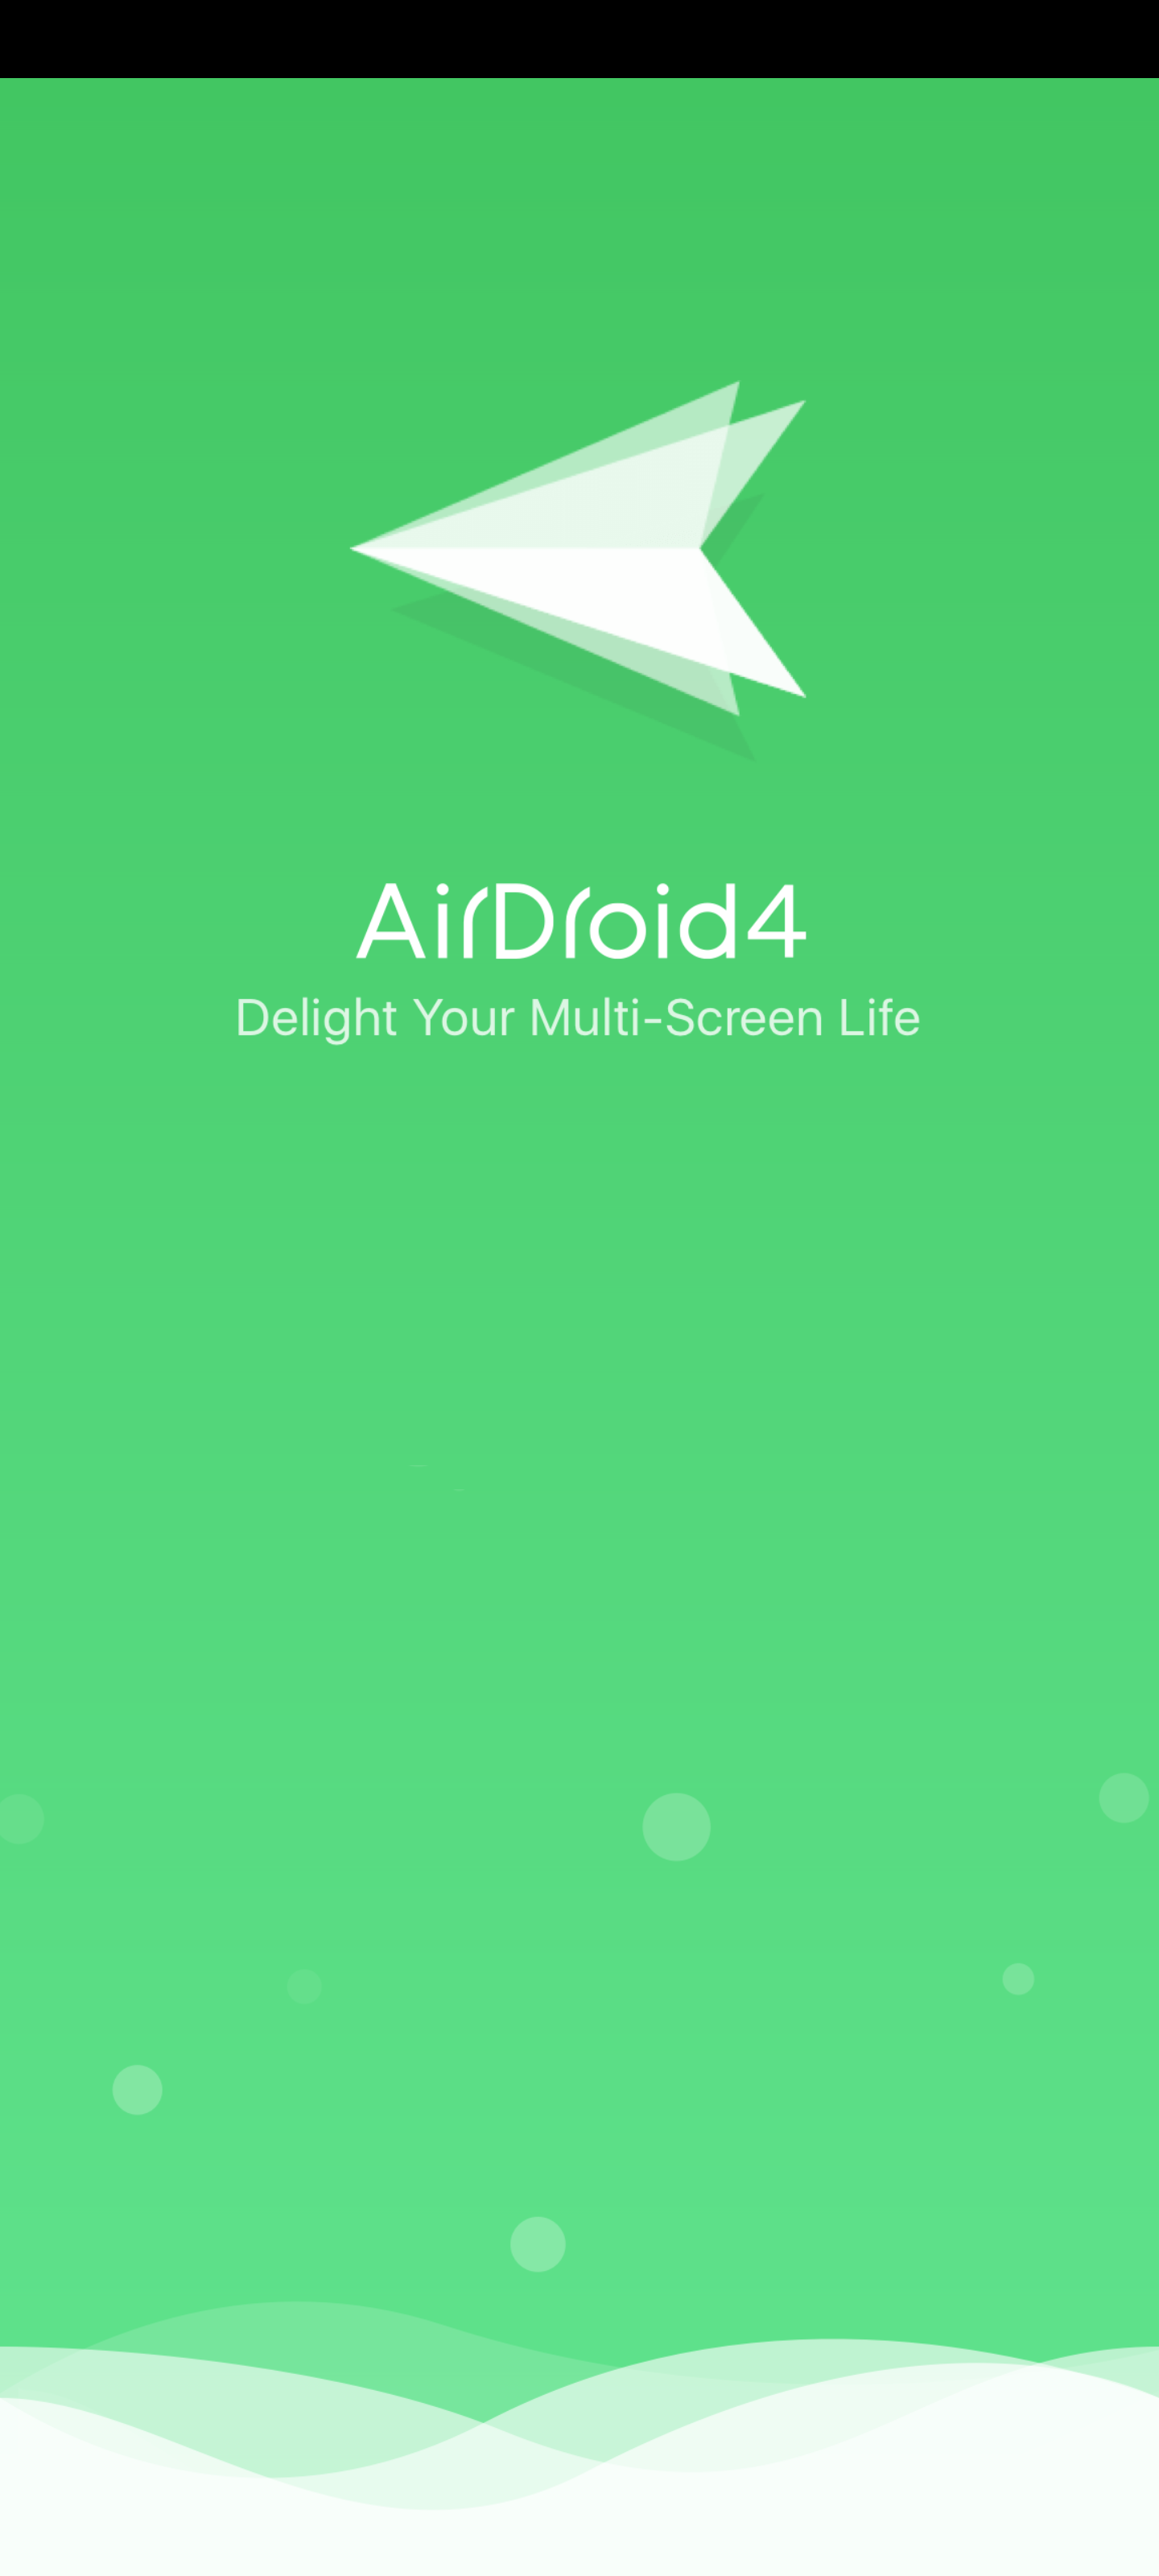 AirDroid画面